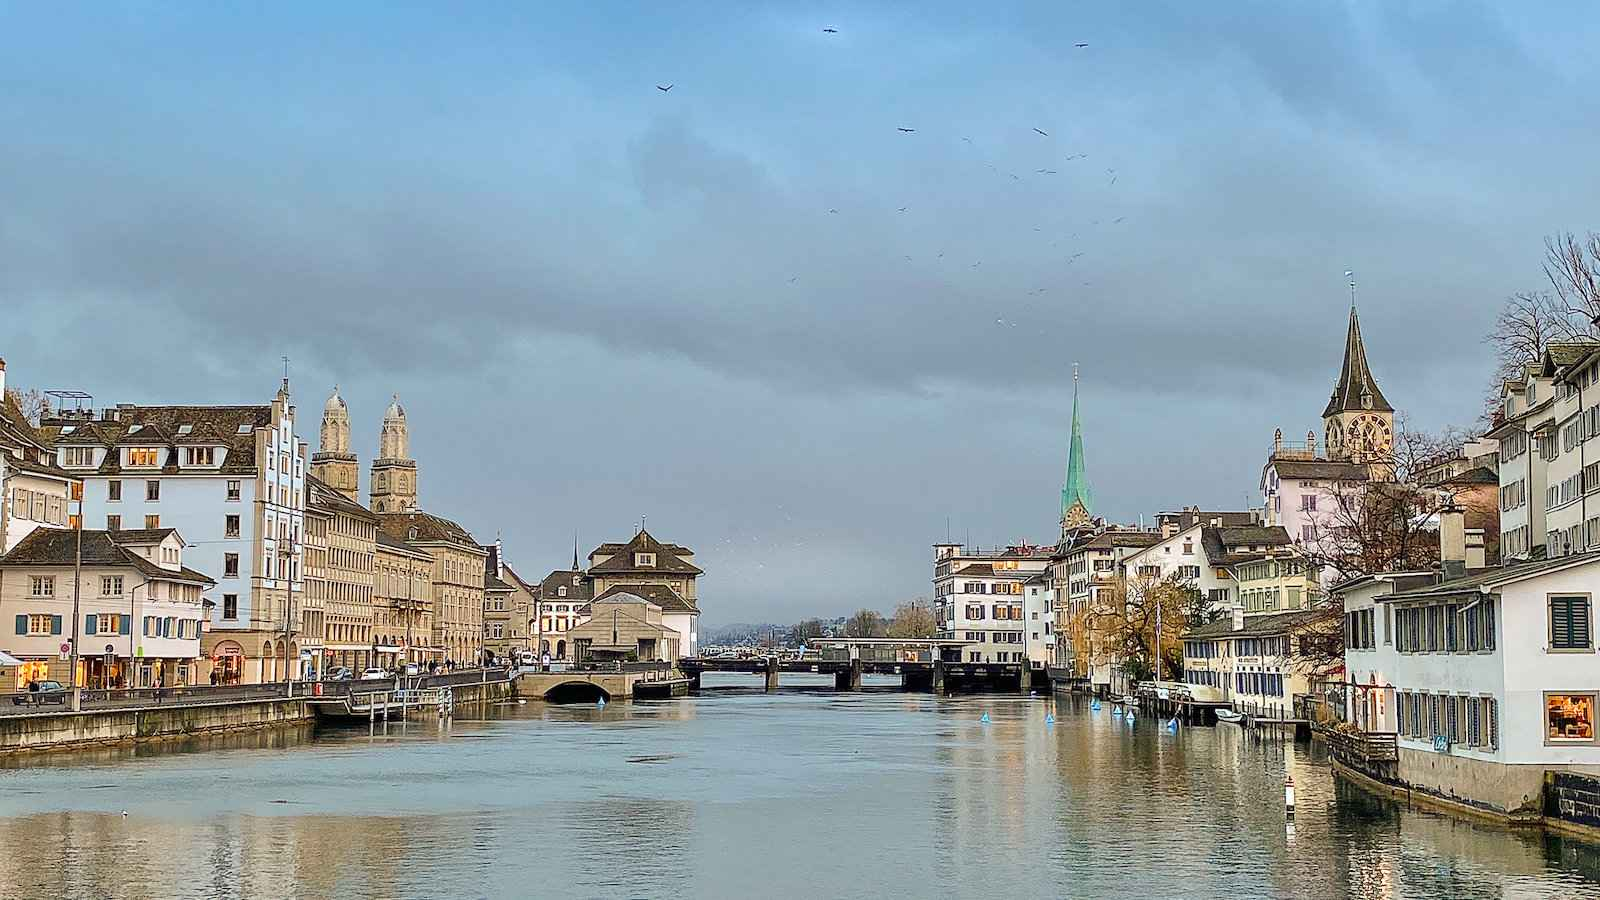 Use our gay guide to Zurich to plan your own fabulous trip to Switzerland's largest city!